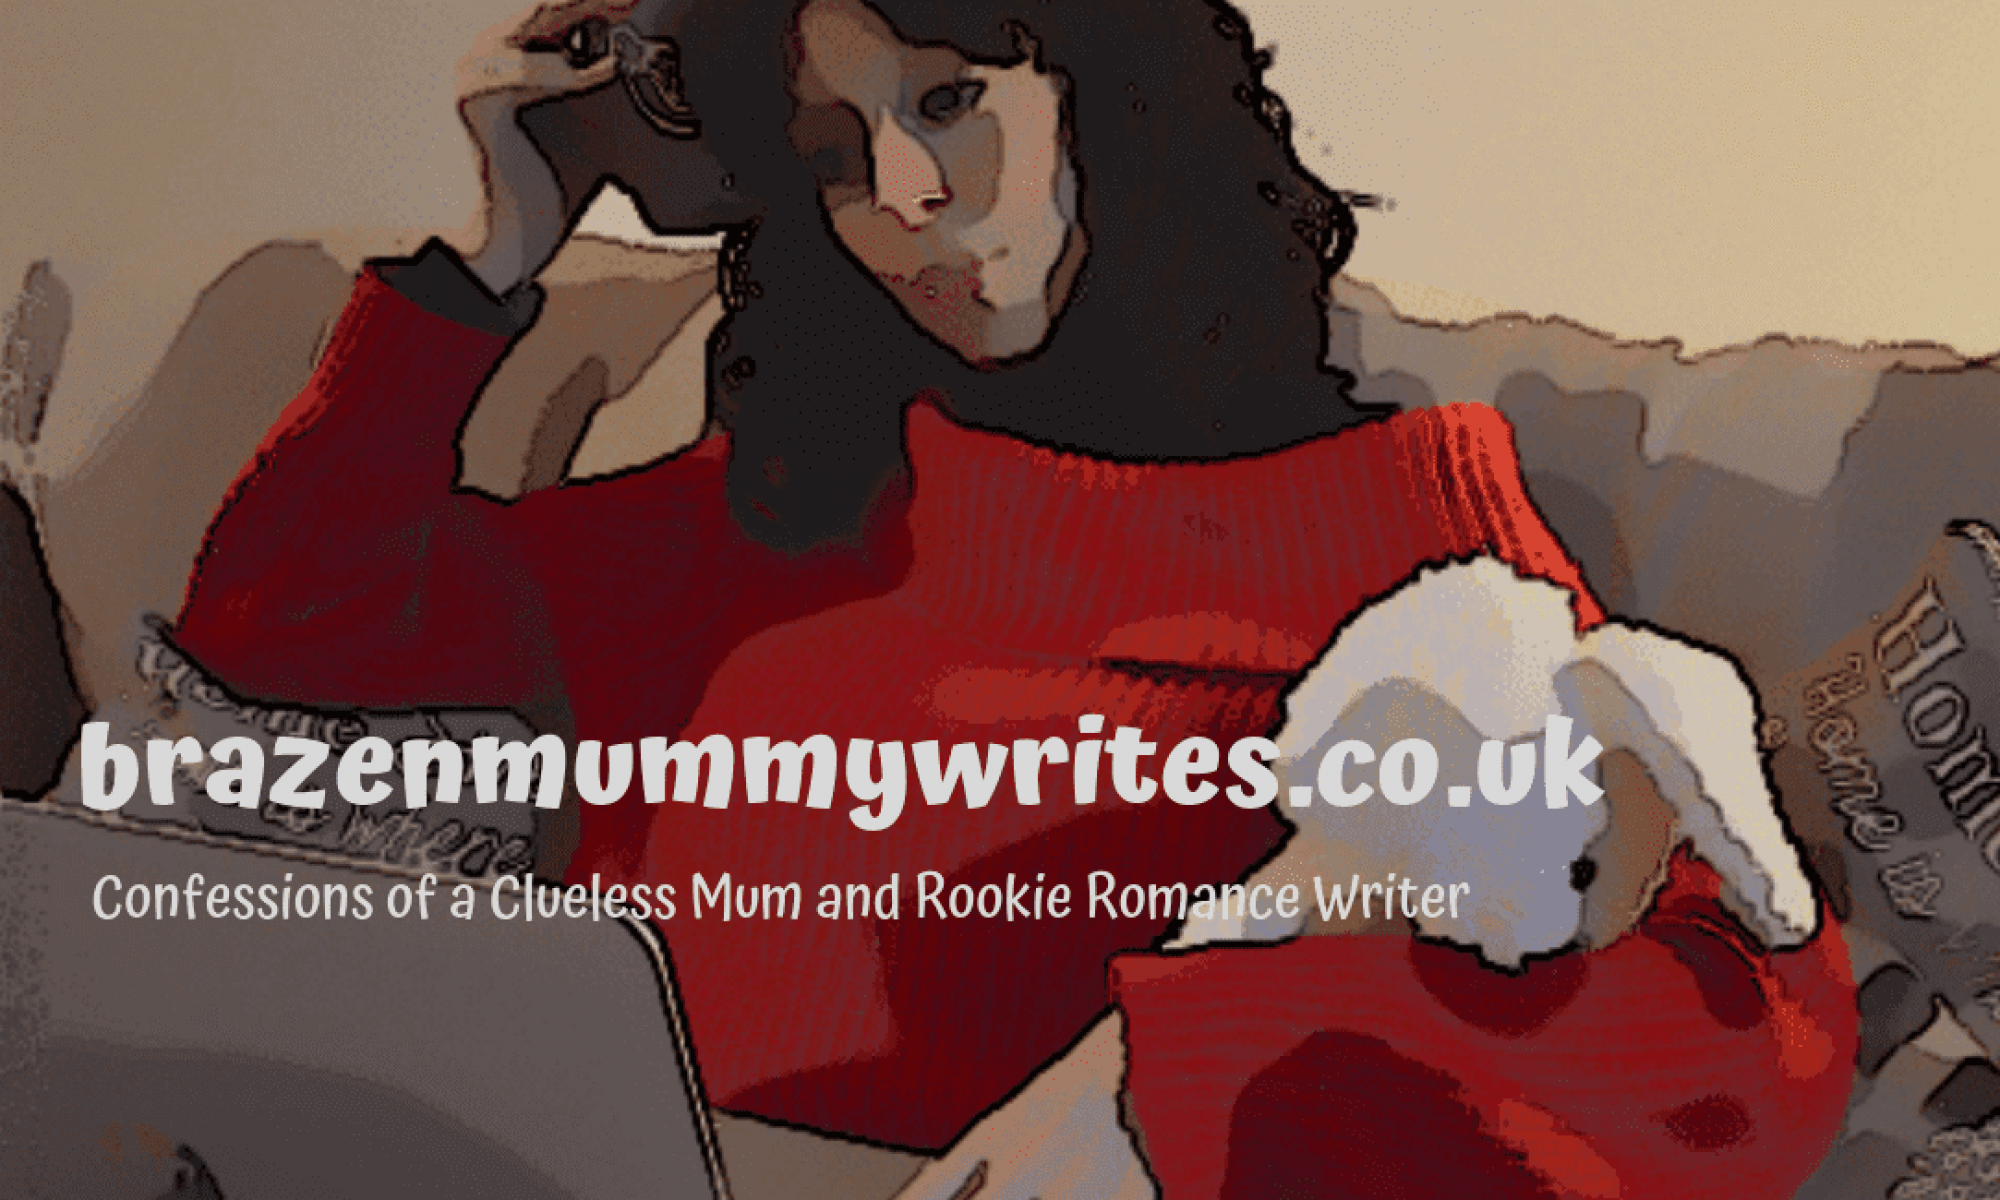 www.brazenmummywrites.co.uk